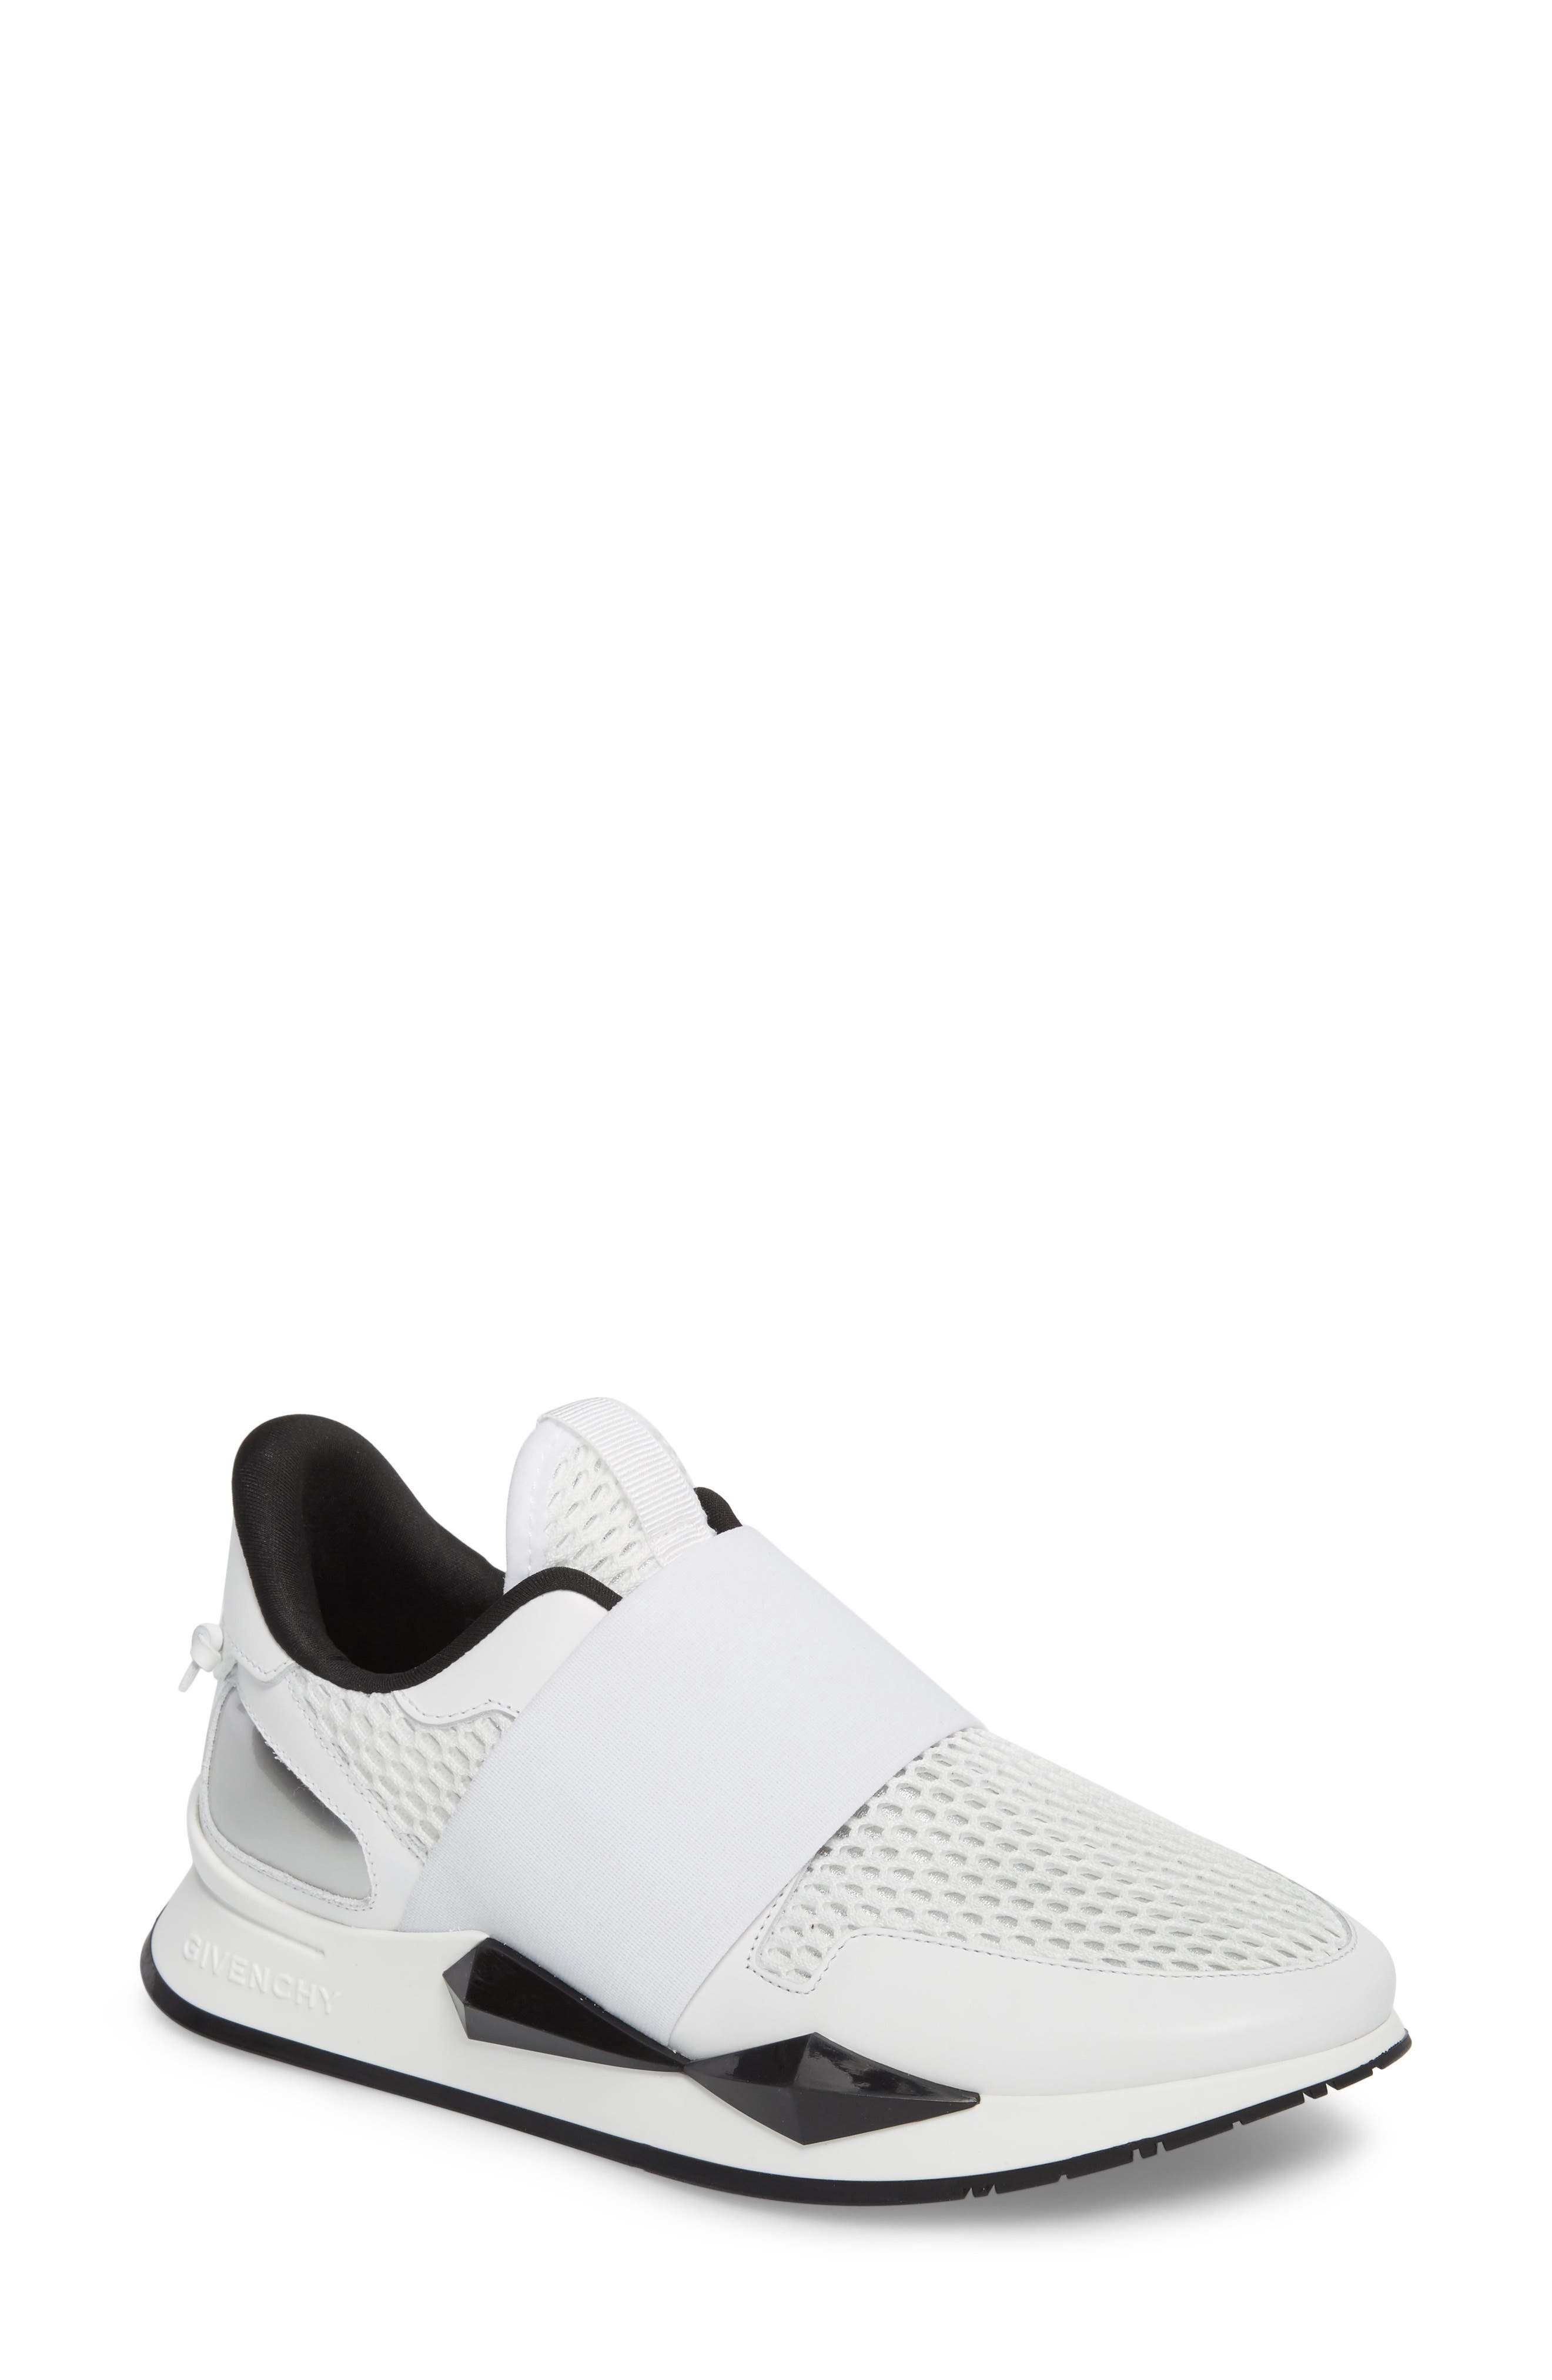 Givenchy Elastic Strap Sneaker (Women)